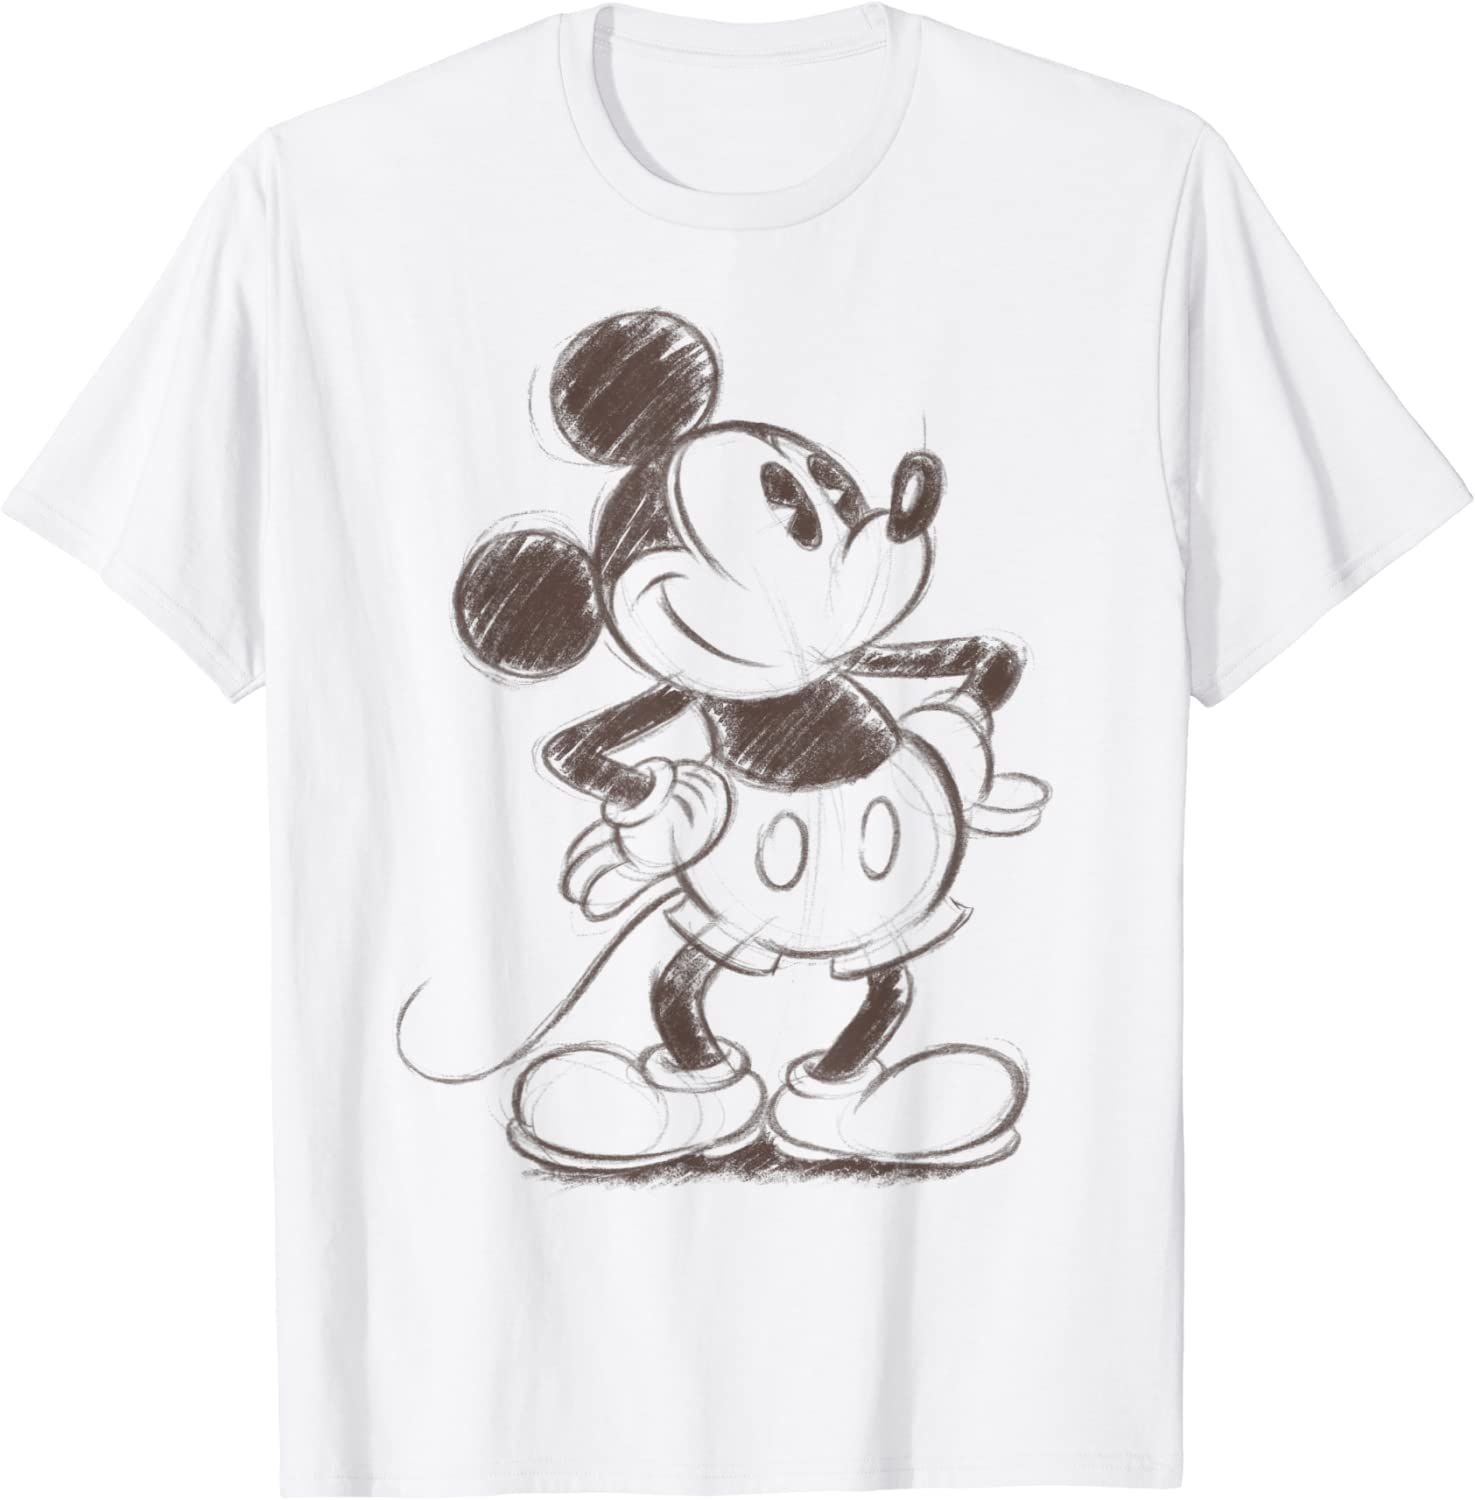 Disney Mickey And Friends Mickey Mouse Sketch Portrait T-Shirt